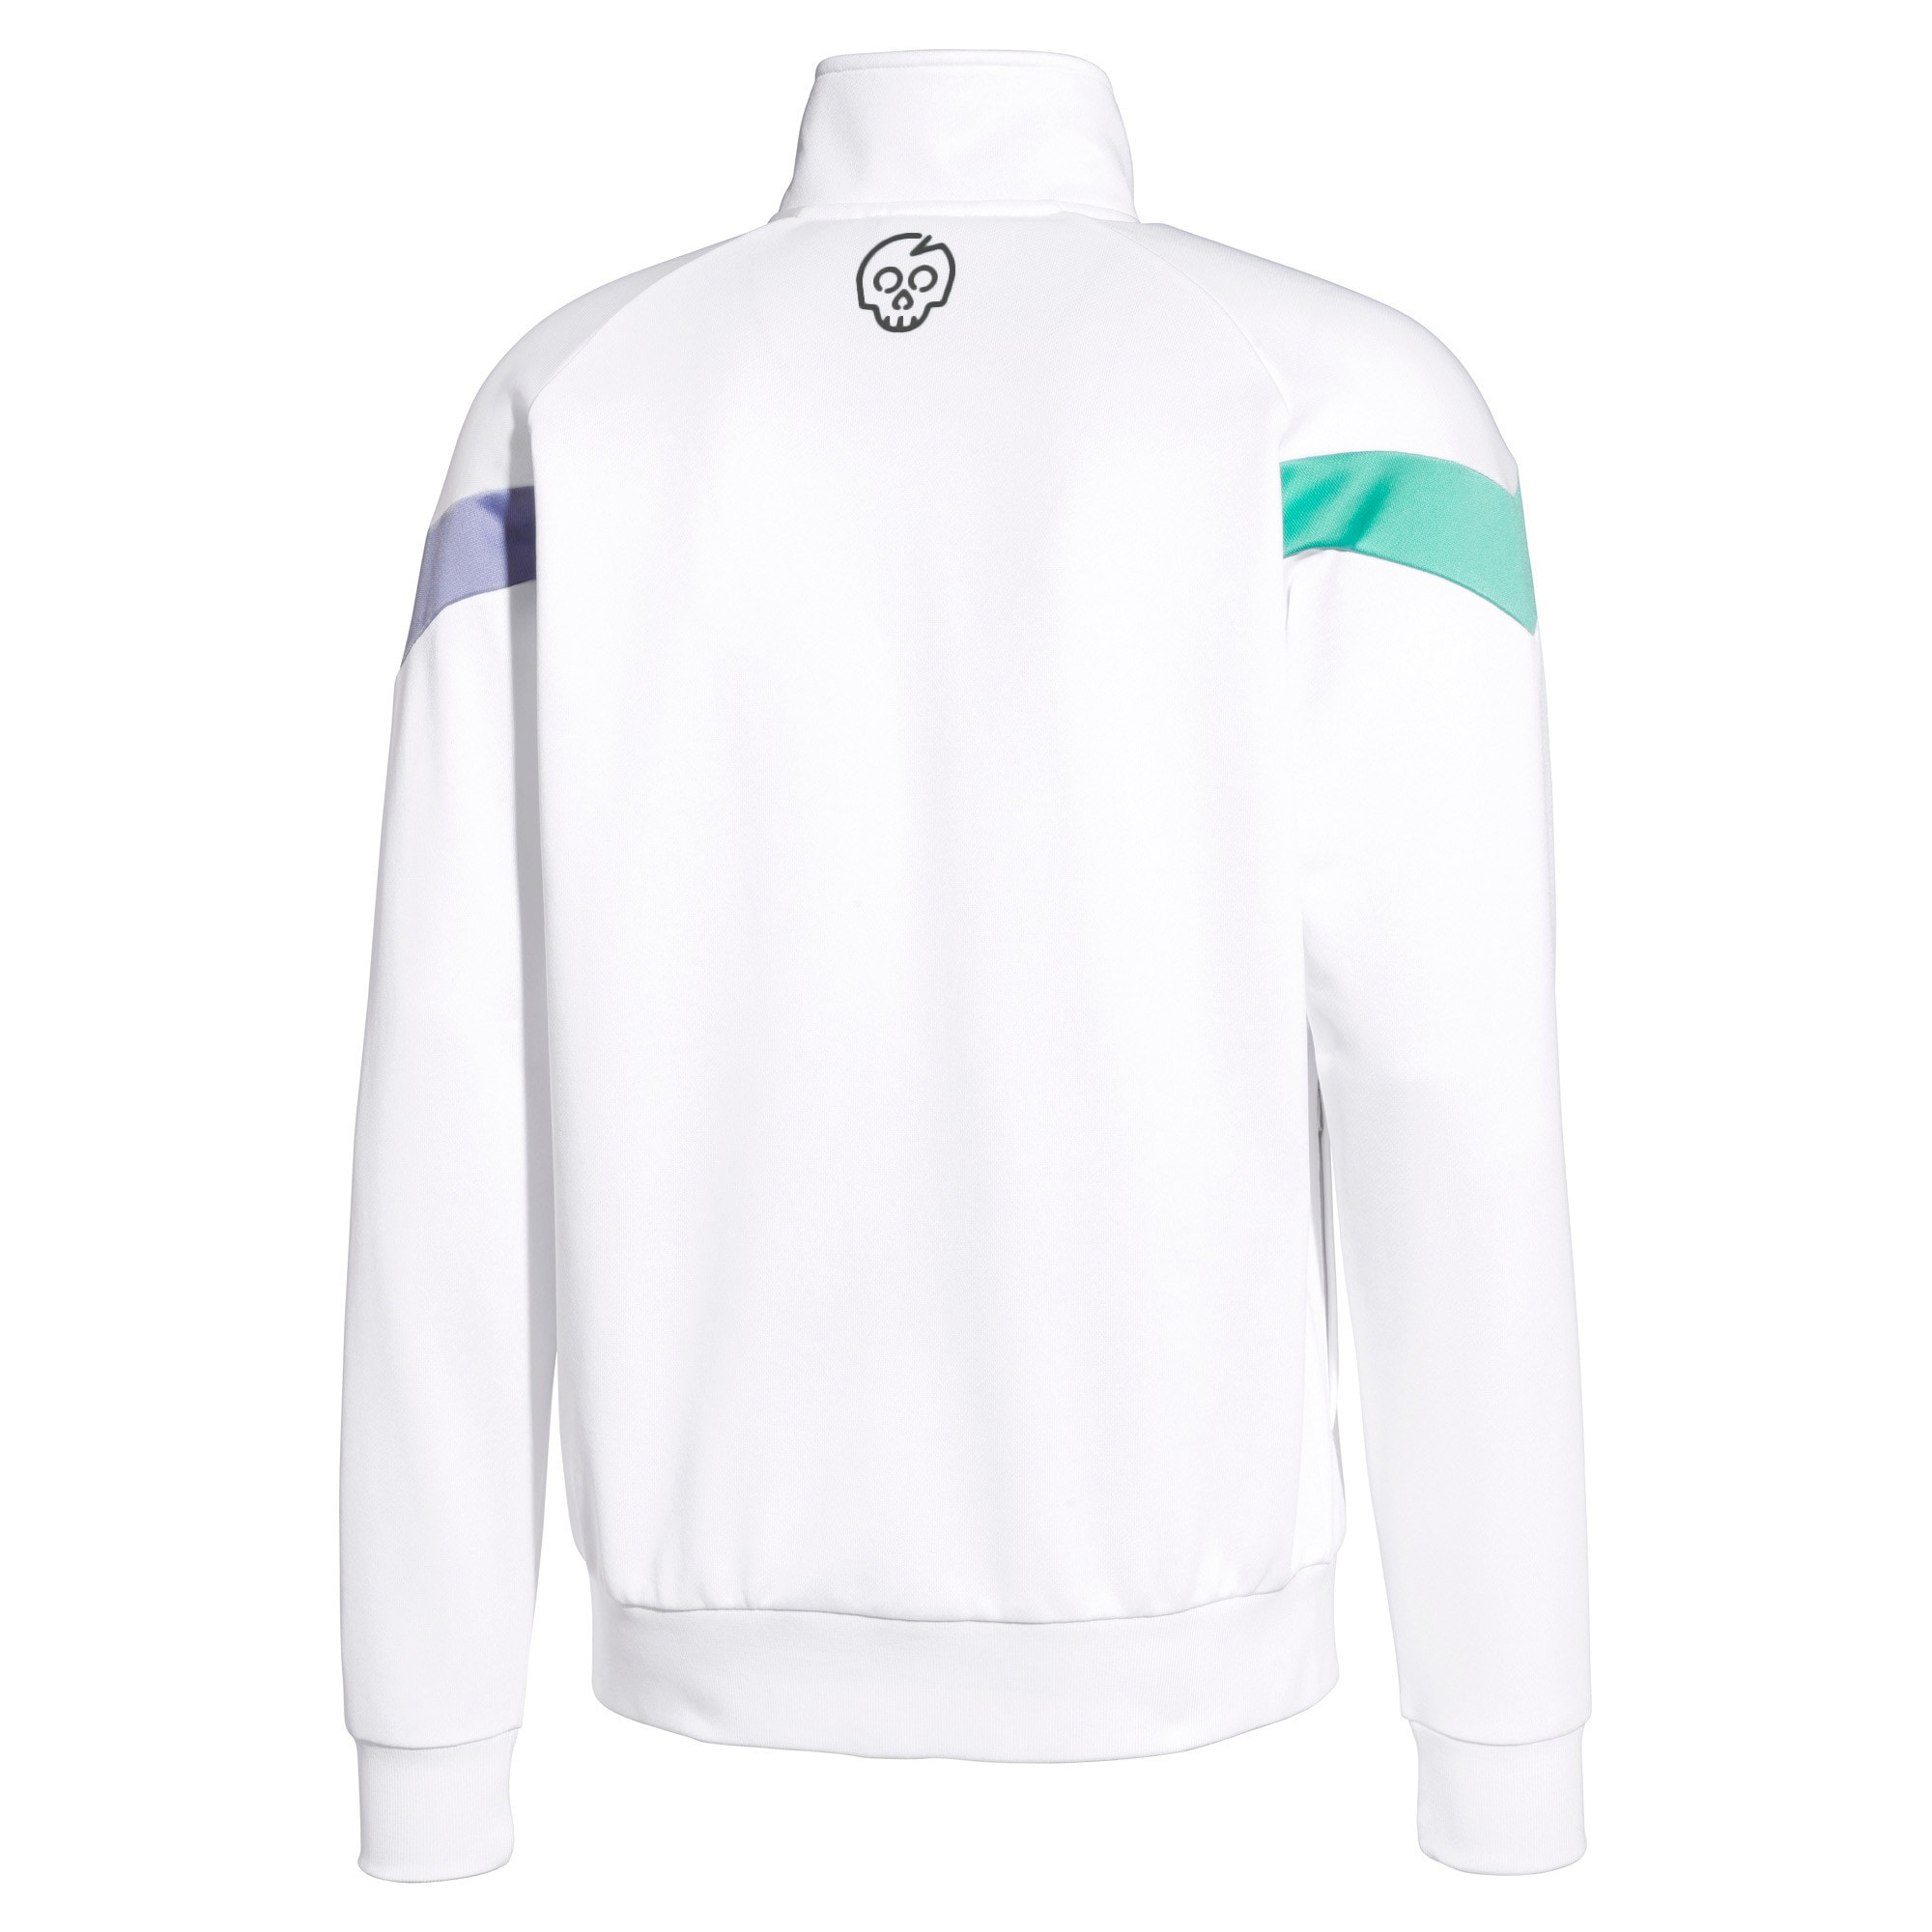 Thumbnail 2 of PUMA x MTV MCS Men's Track Jacket, Puma White, medium